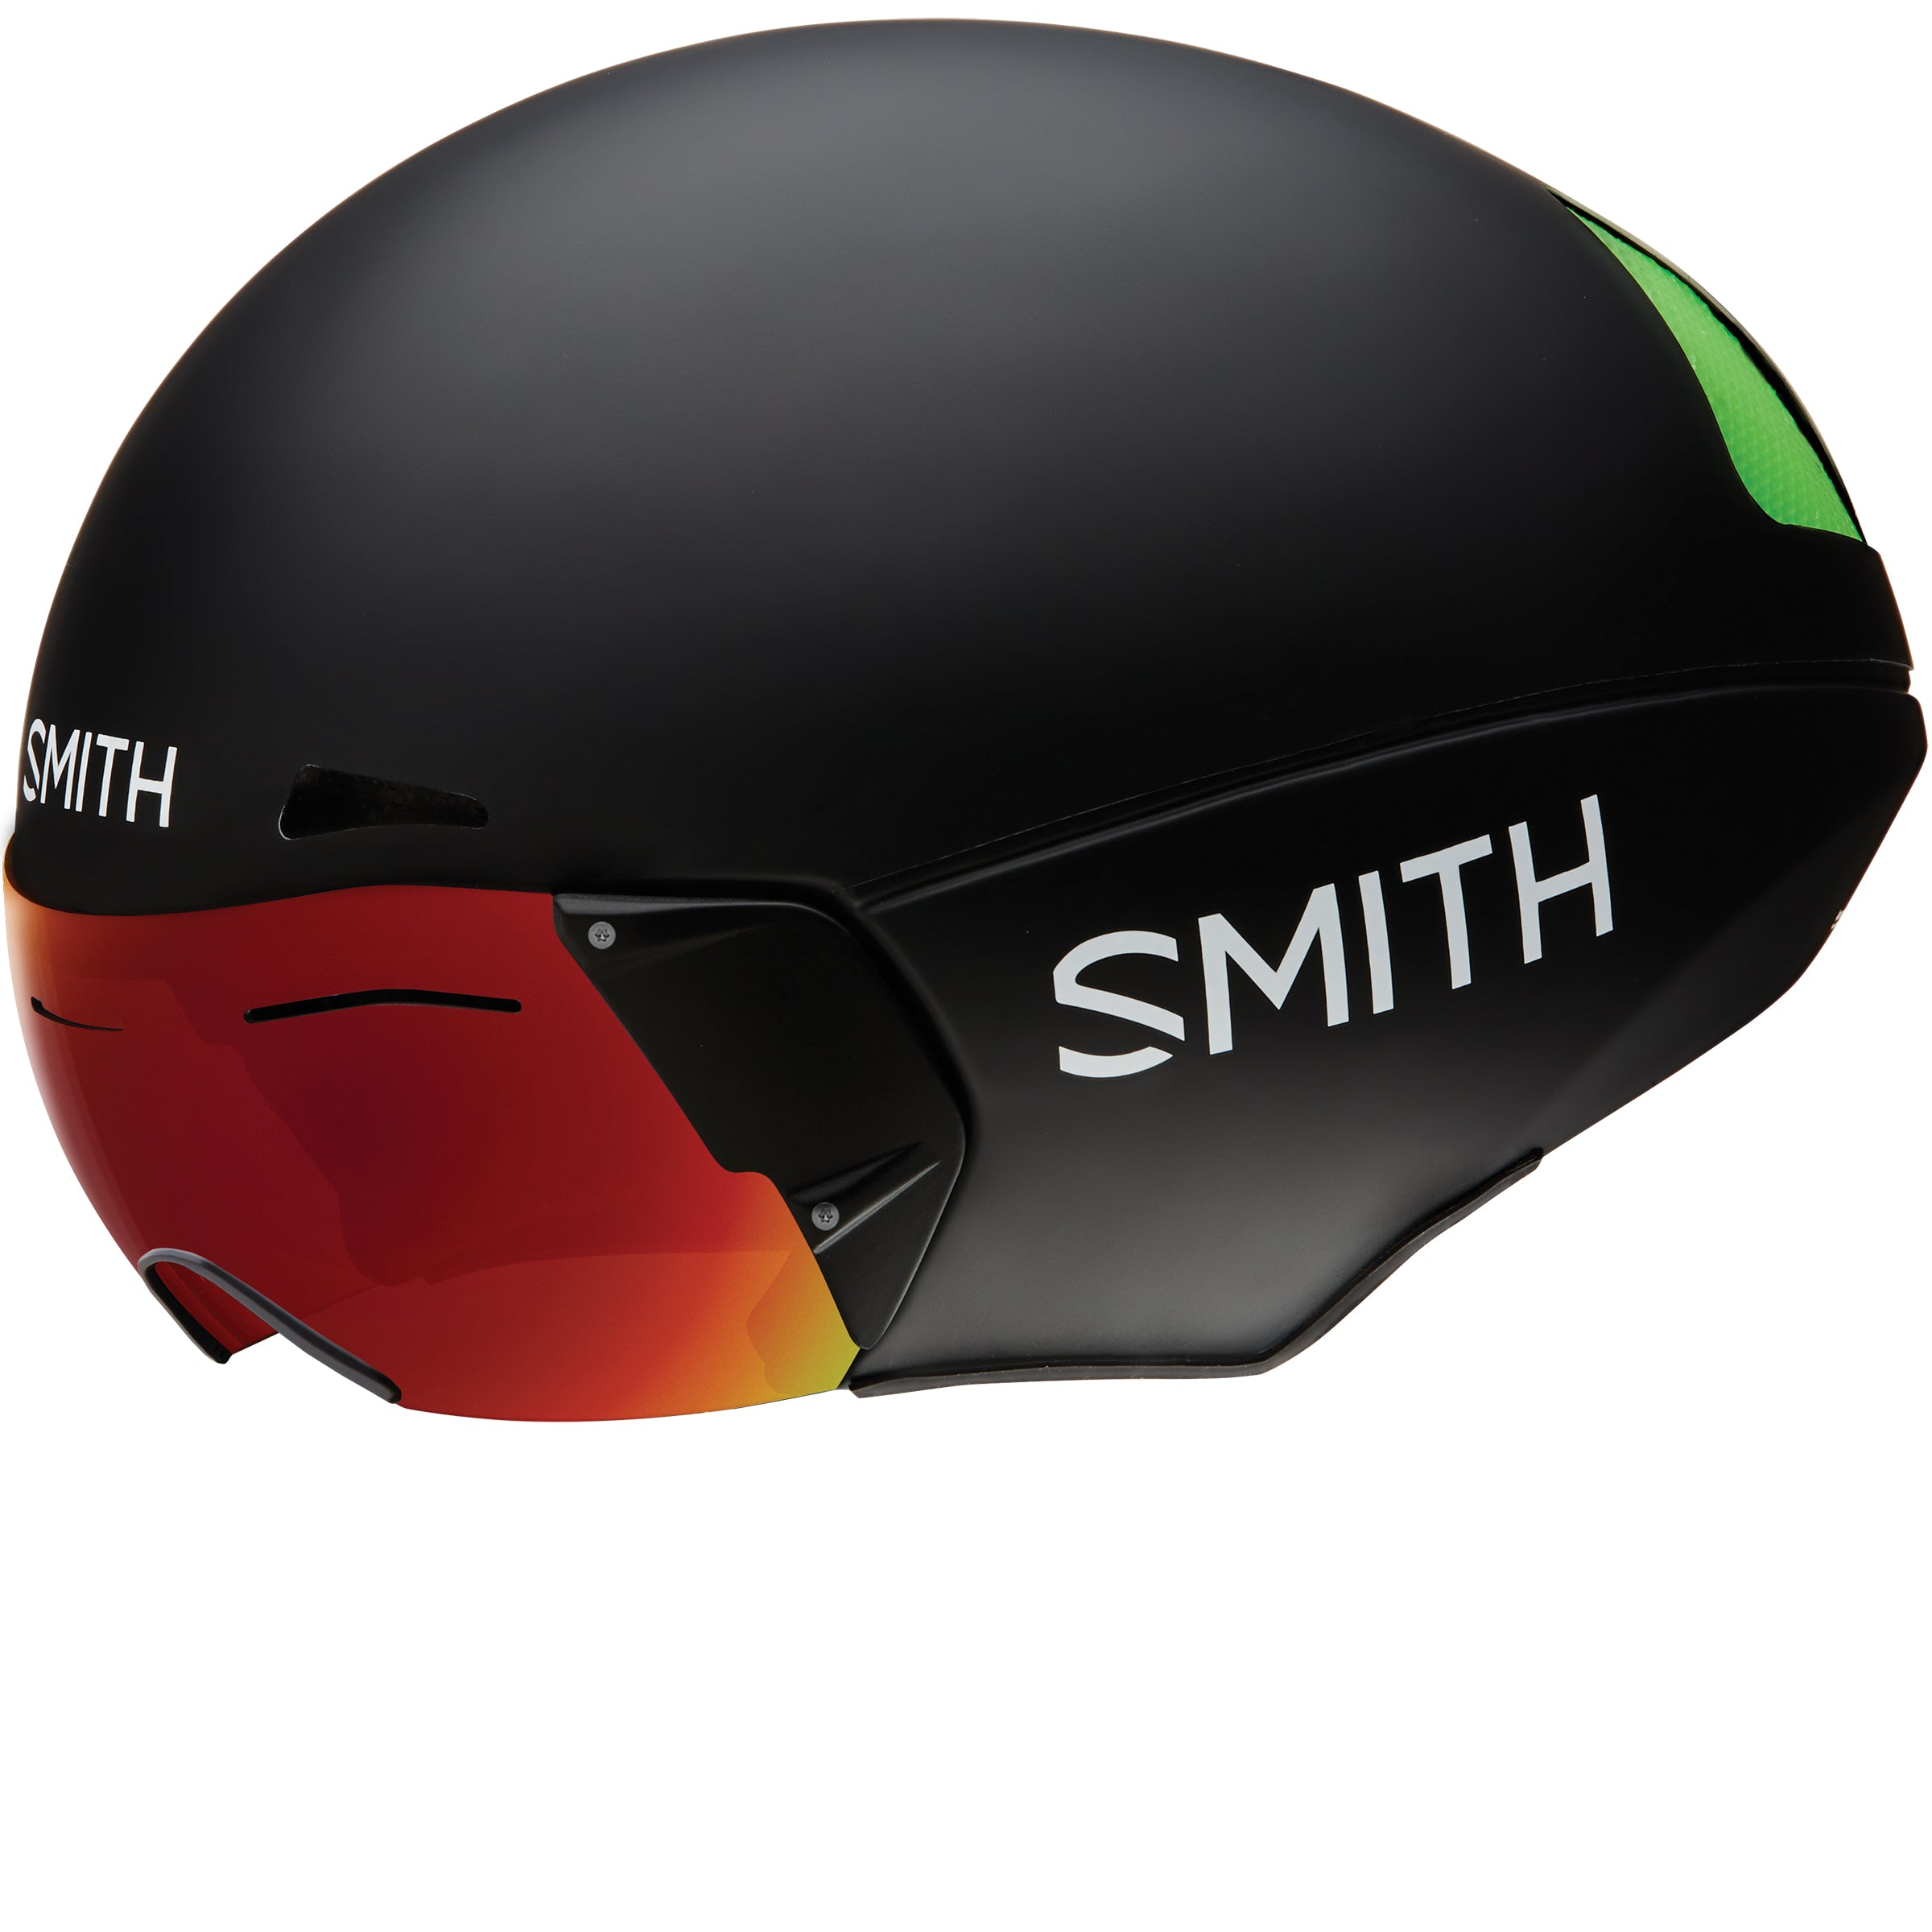 Casco Smith Podium TT M Mip W/lens BK 19